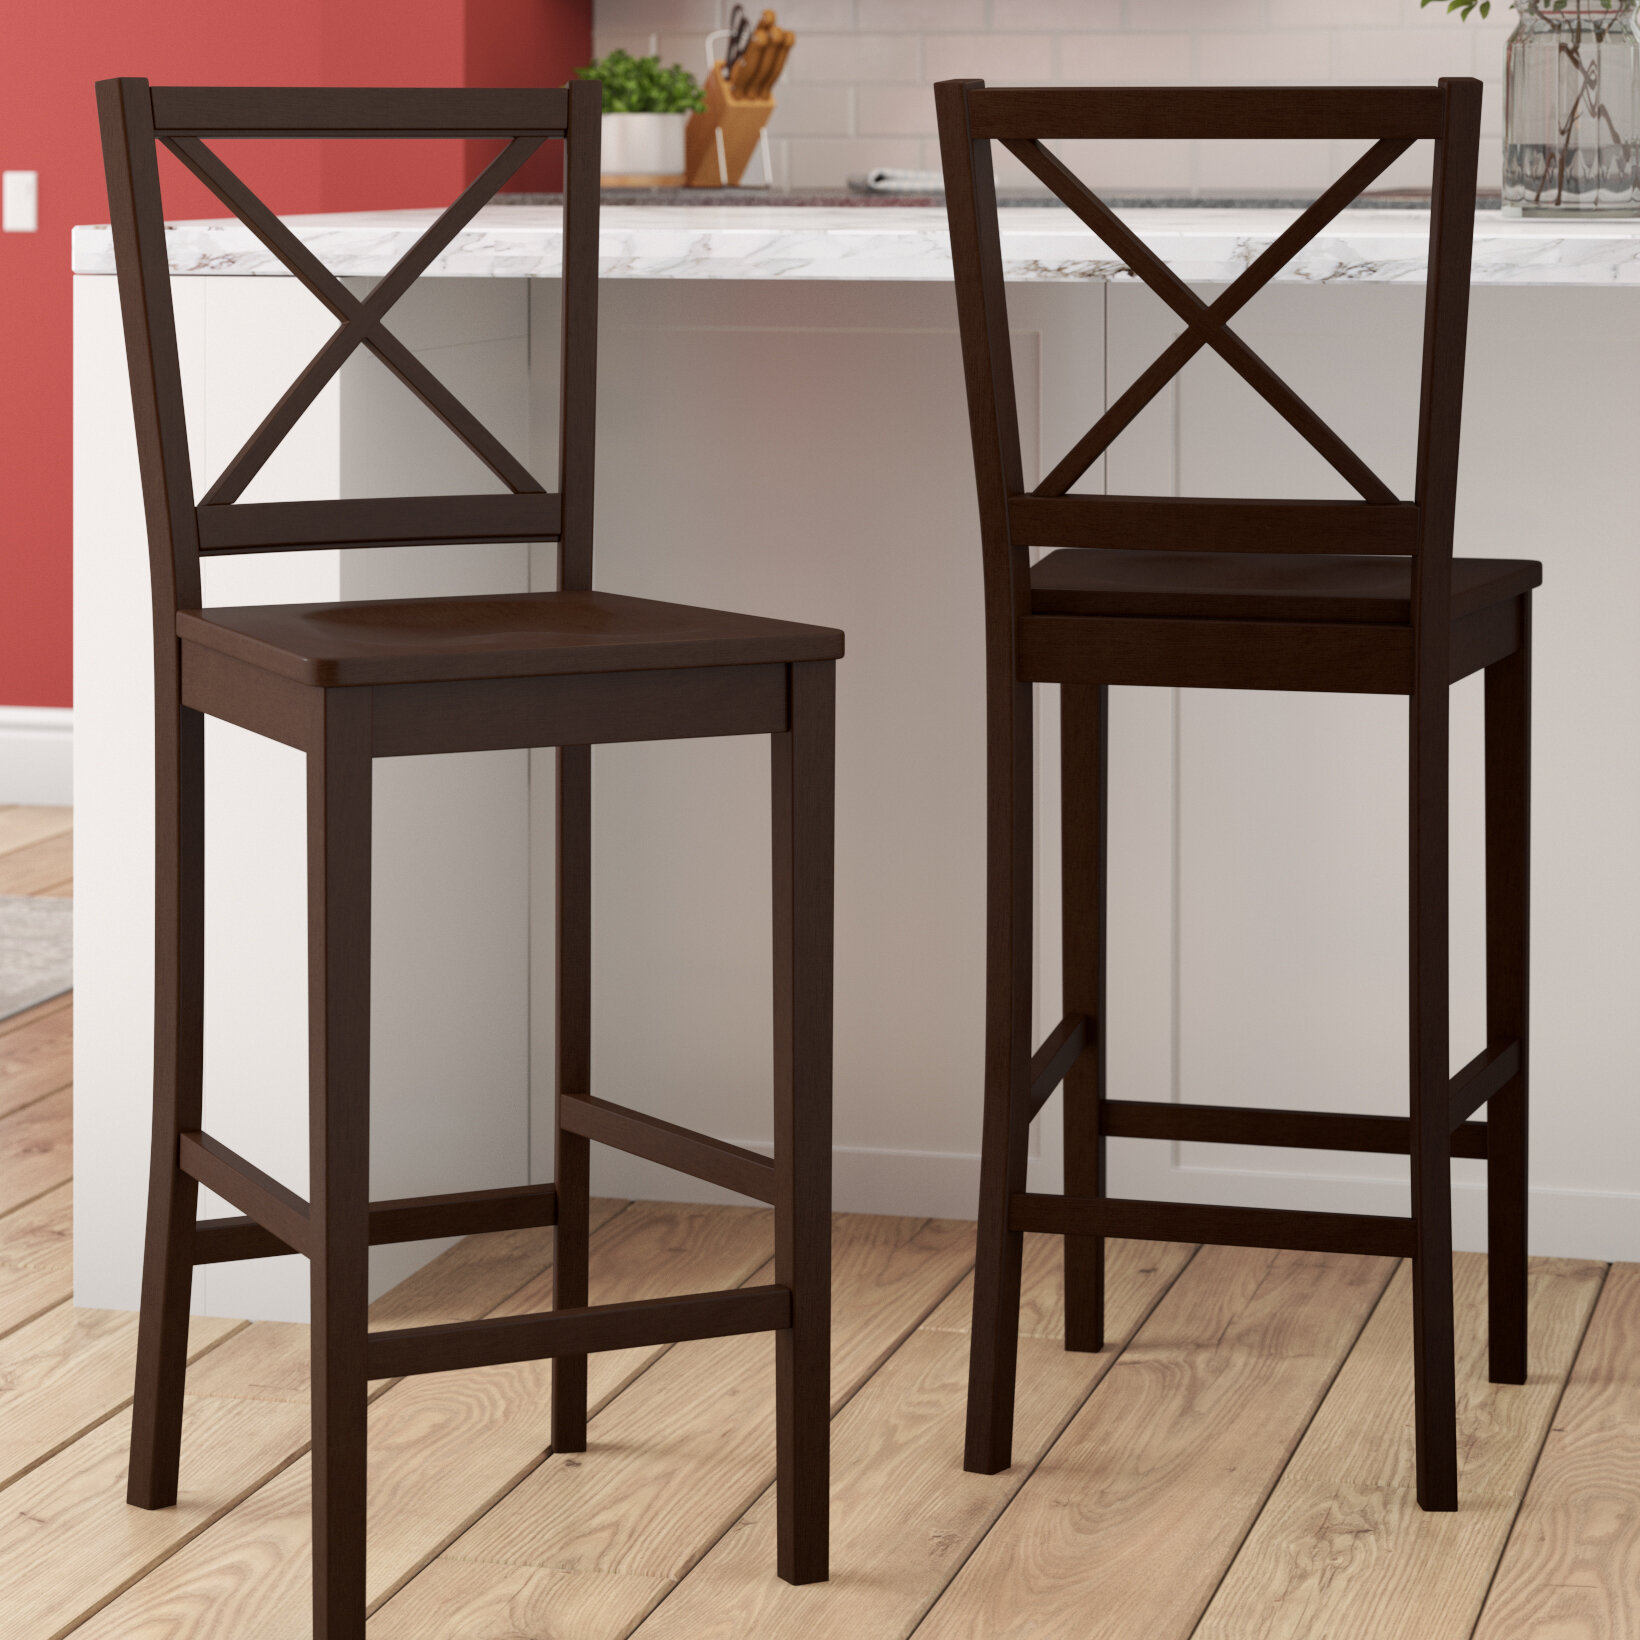 Superb Charlotte Cross Back 24 Bar Stool Pdpeps Interior Chair Design Pdpepsorg